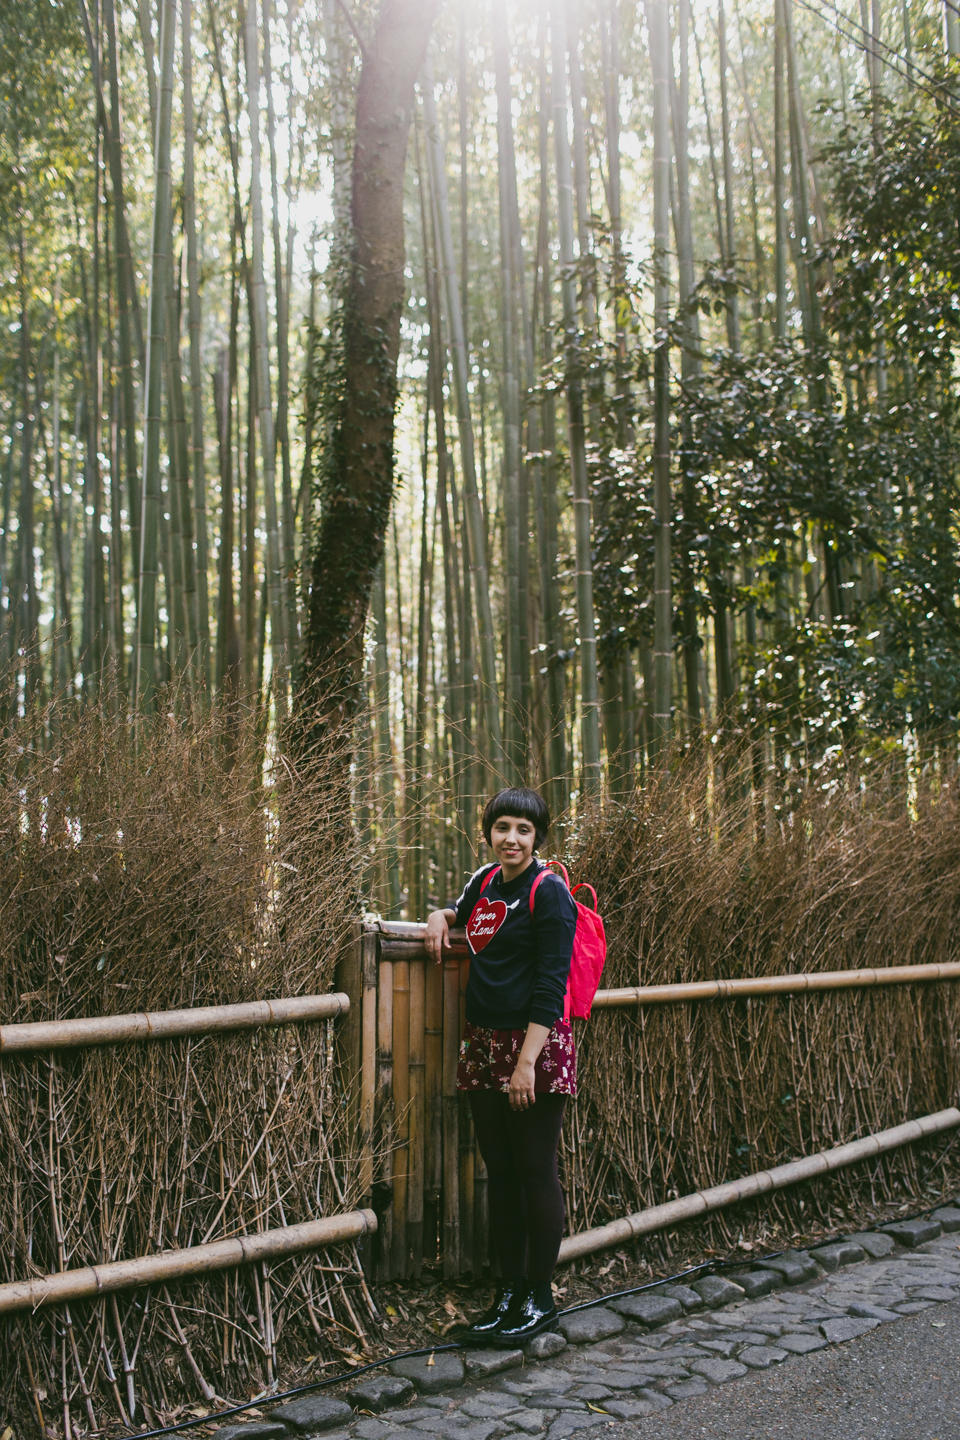 Arashiyama bamboo forest - The cat, you and us